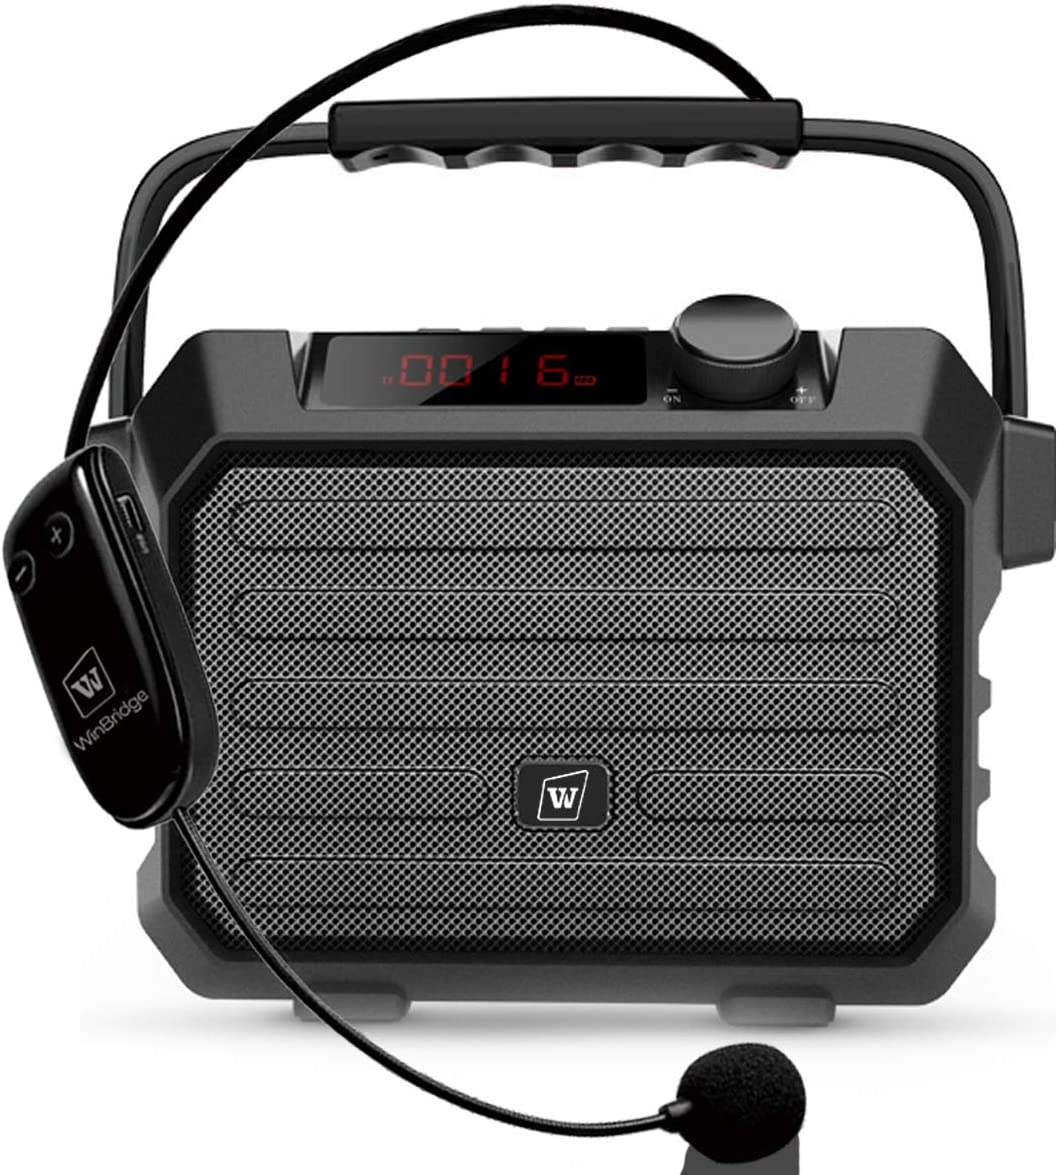 W WINBRIDGE Portable PA Speaker Sound System with Bluetooth Headset Microphone 30W Wireless Loudspeaker & Voice Amplifier Rechargeable, Small Size, Handy and Multi-functional H5